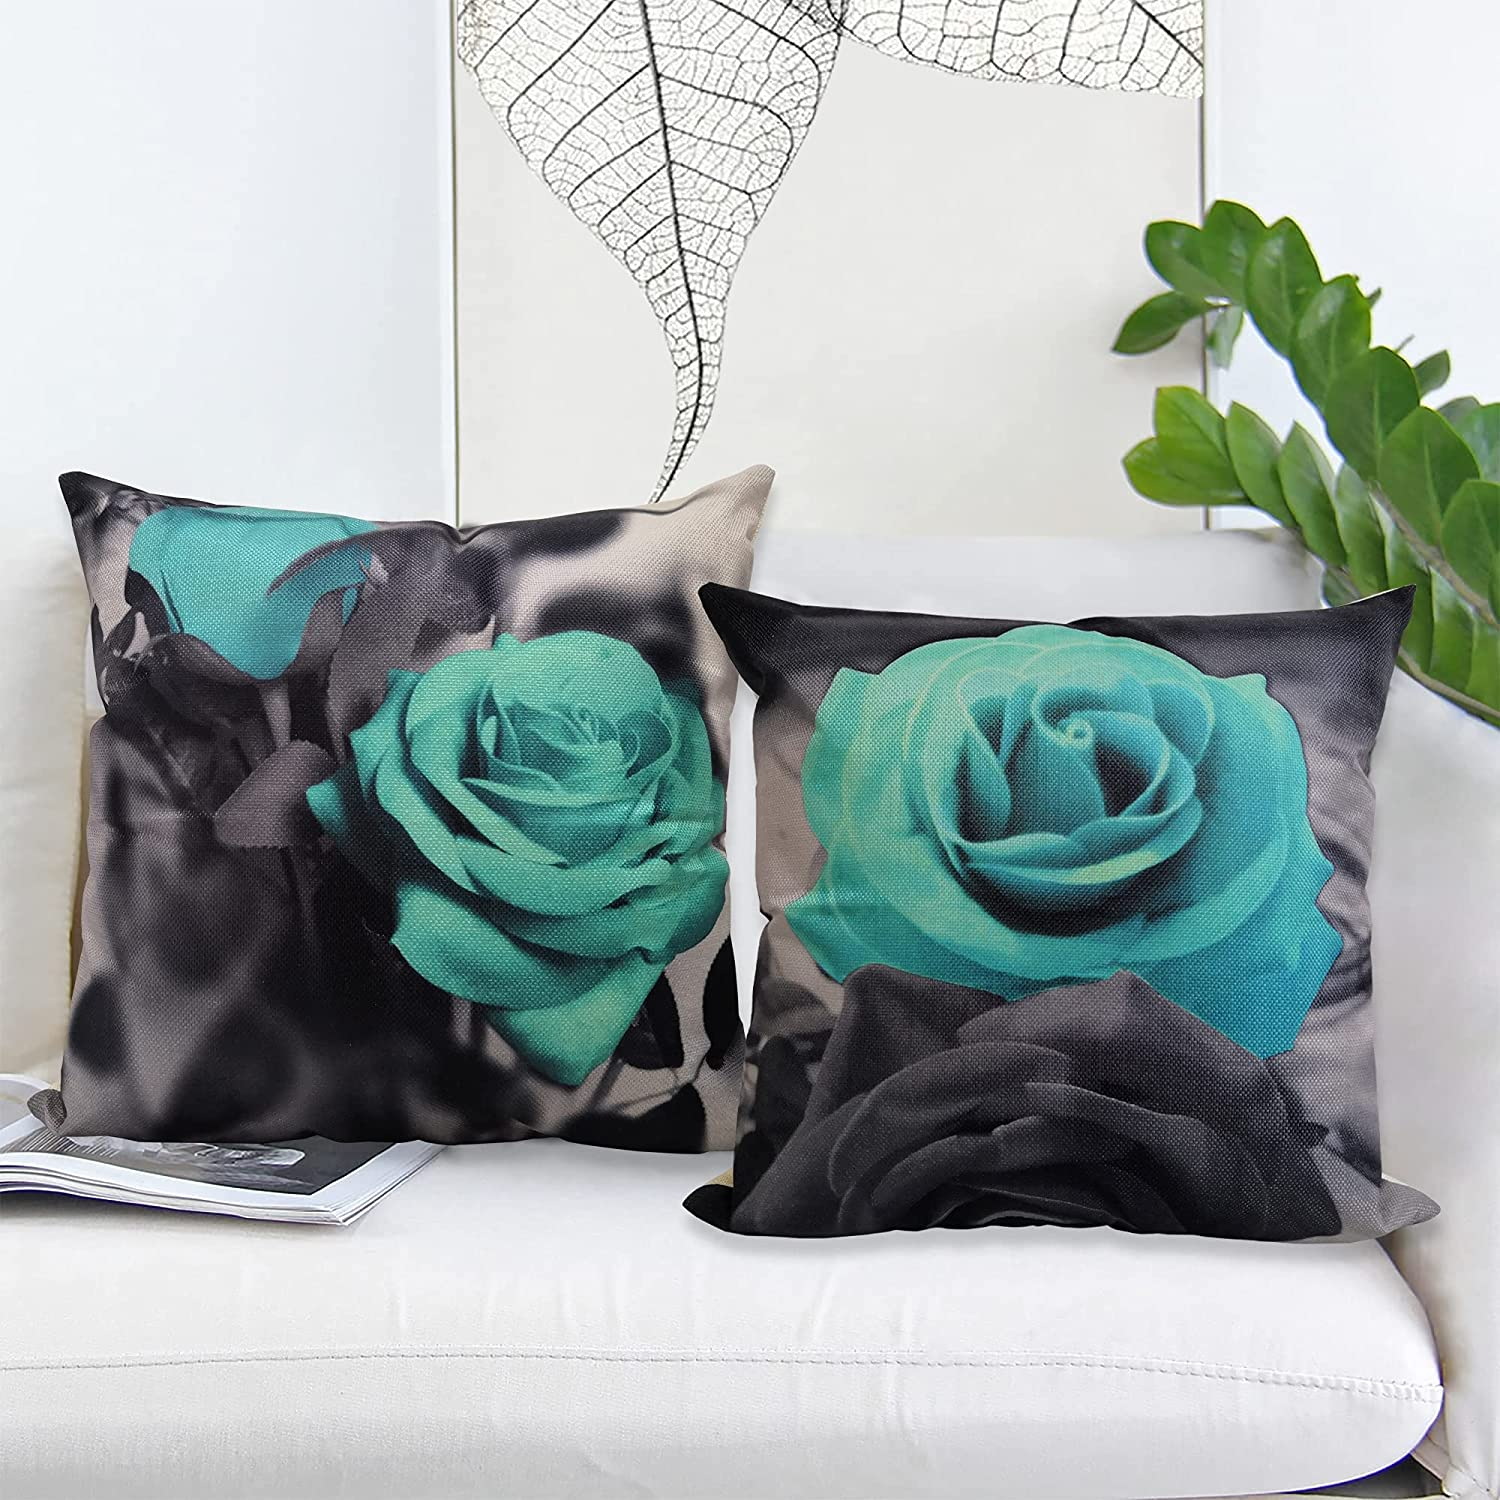 HSINYA Set of 2 Throw Pillow shop Squ Flowers Black Cheap mail order specialty store Background Covers